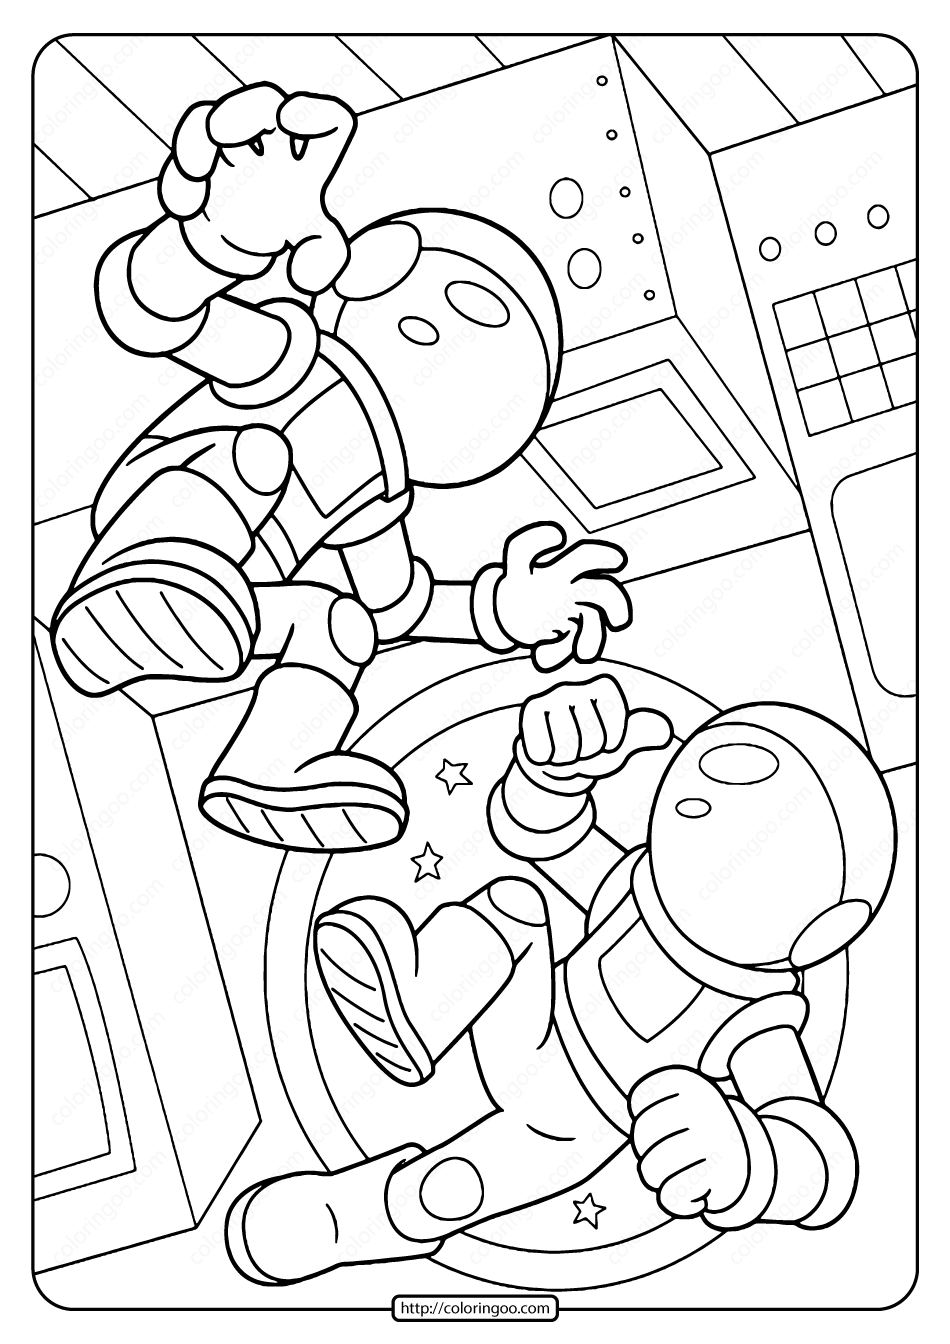 Free Printable Space Astronauts Pdf Coloring Page